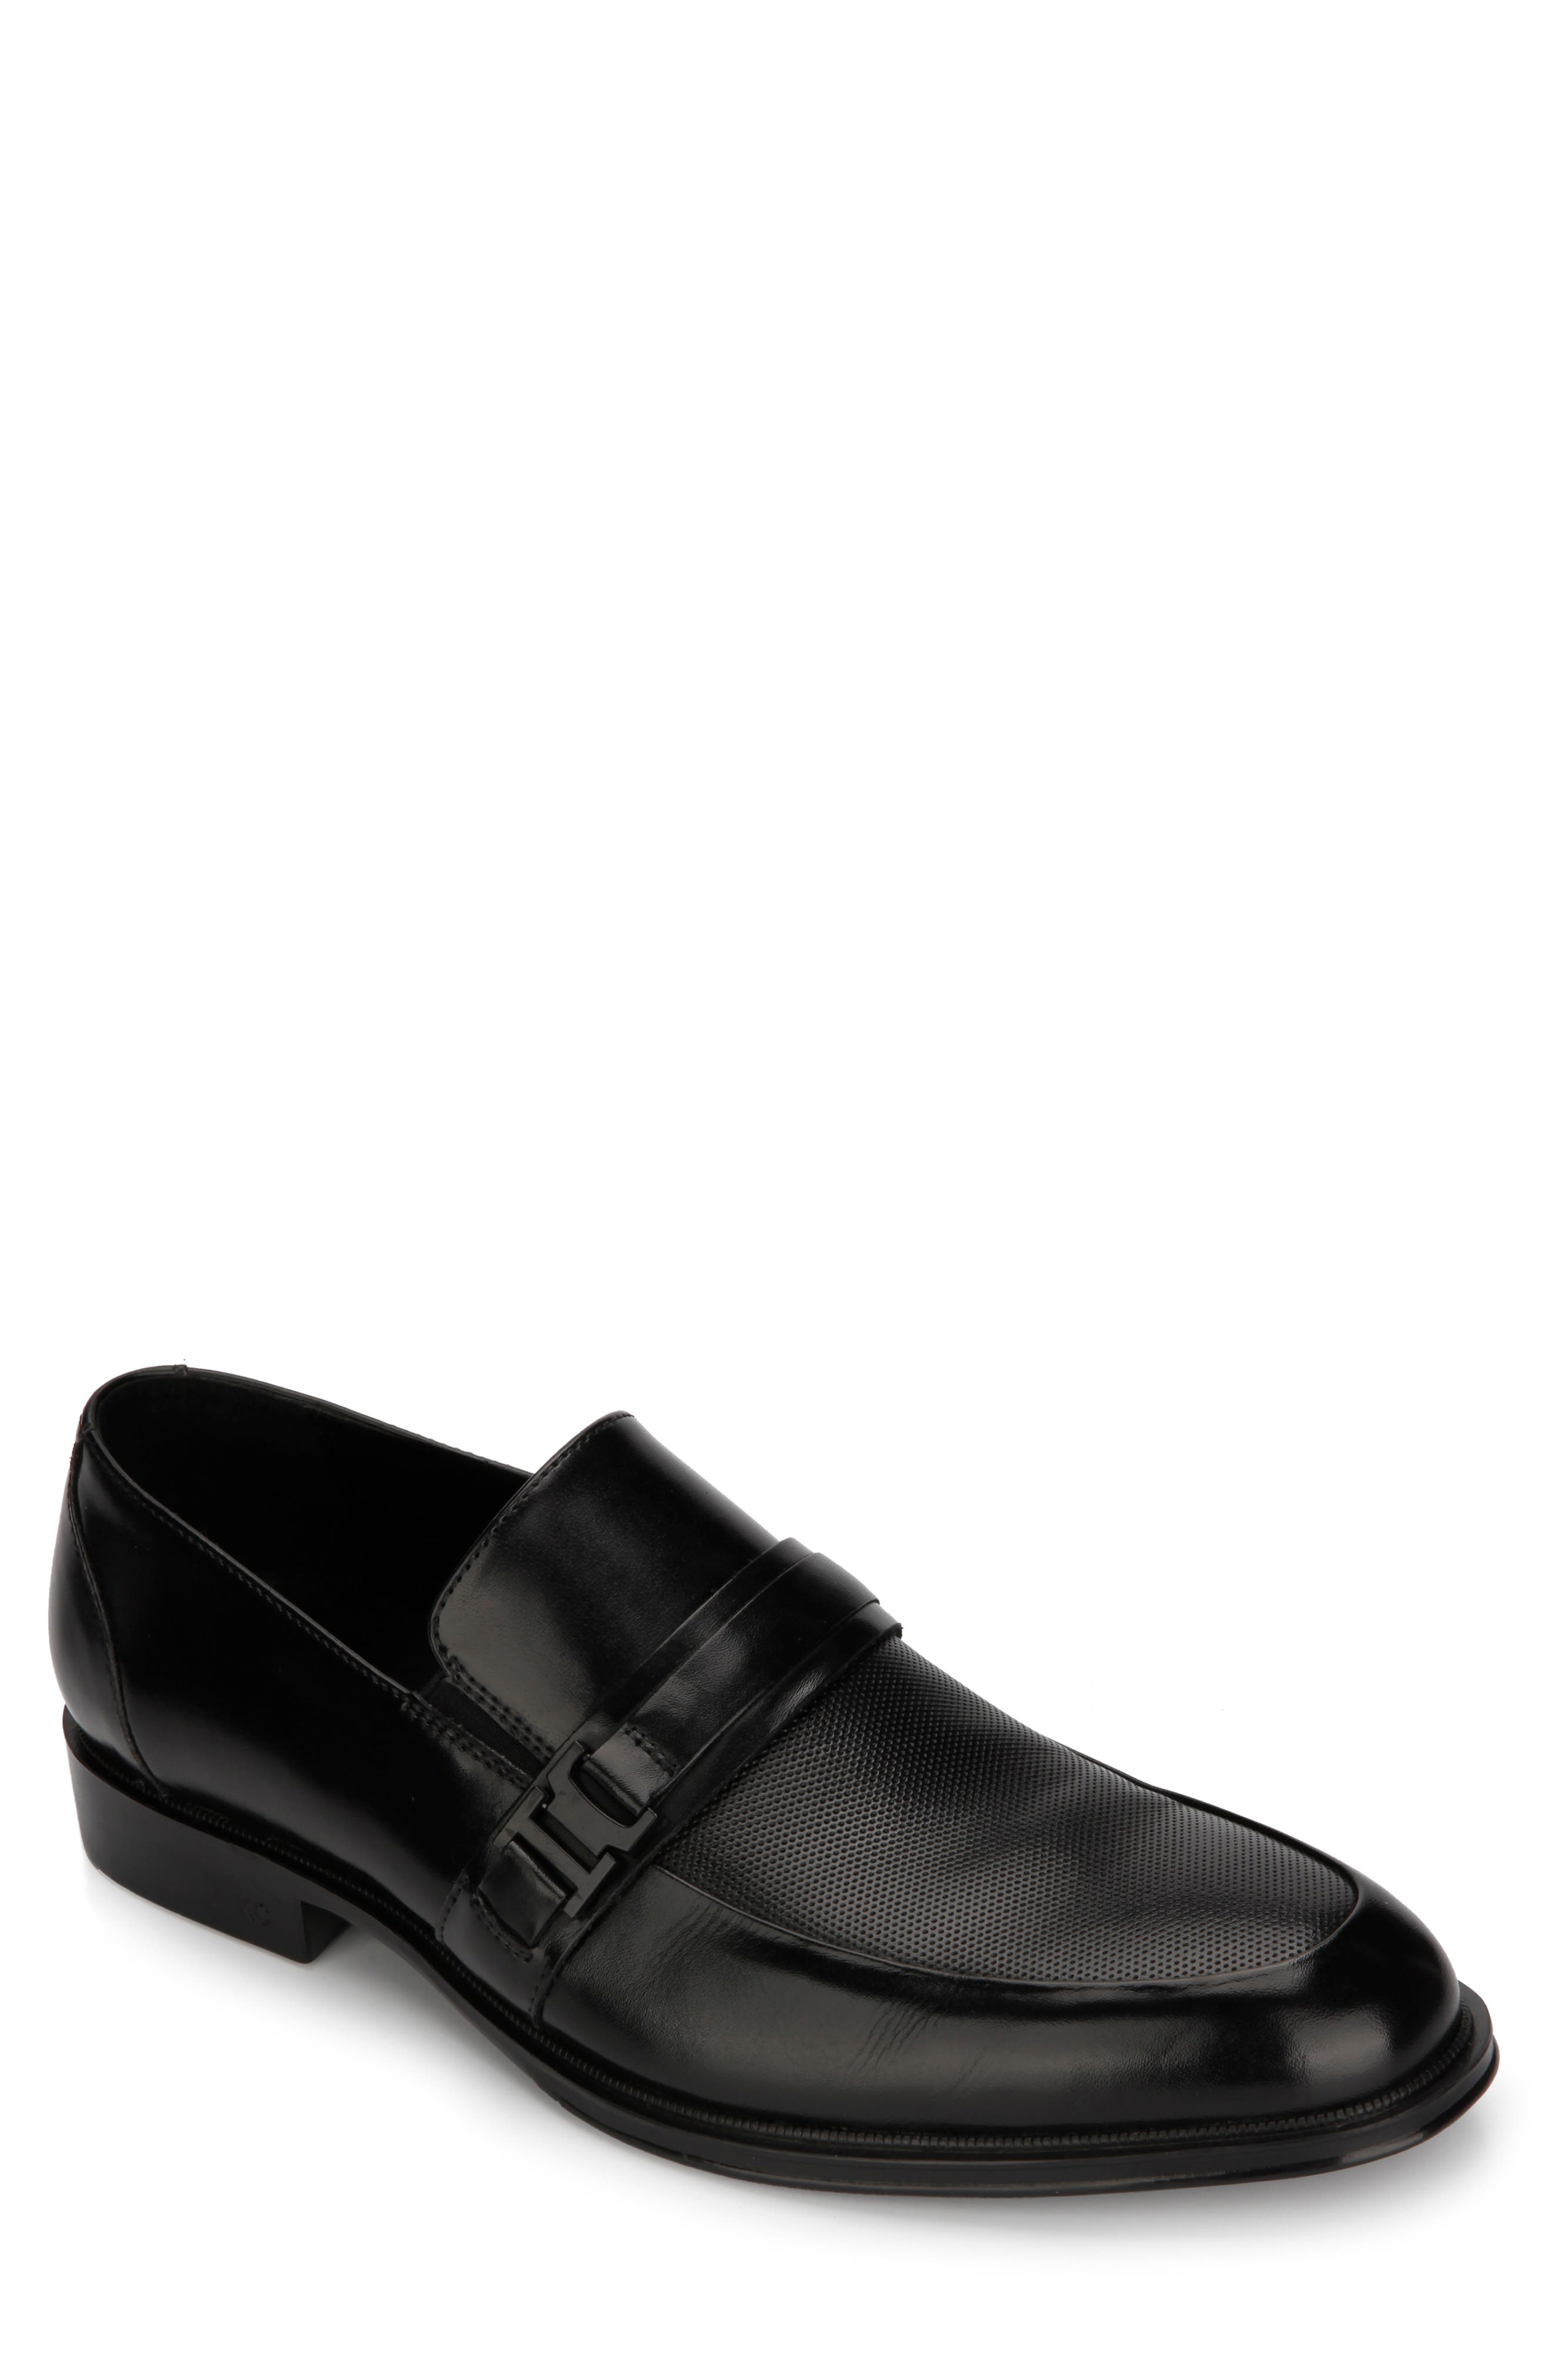 REACTION KENNETH COLE, Zac Embossed Slip-On, Main thumbnail 1, color, BLACK